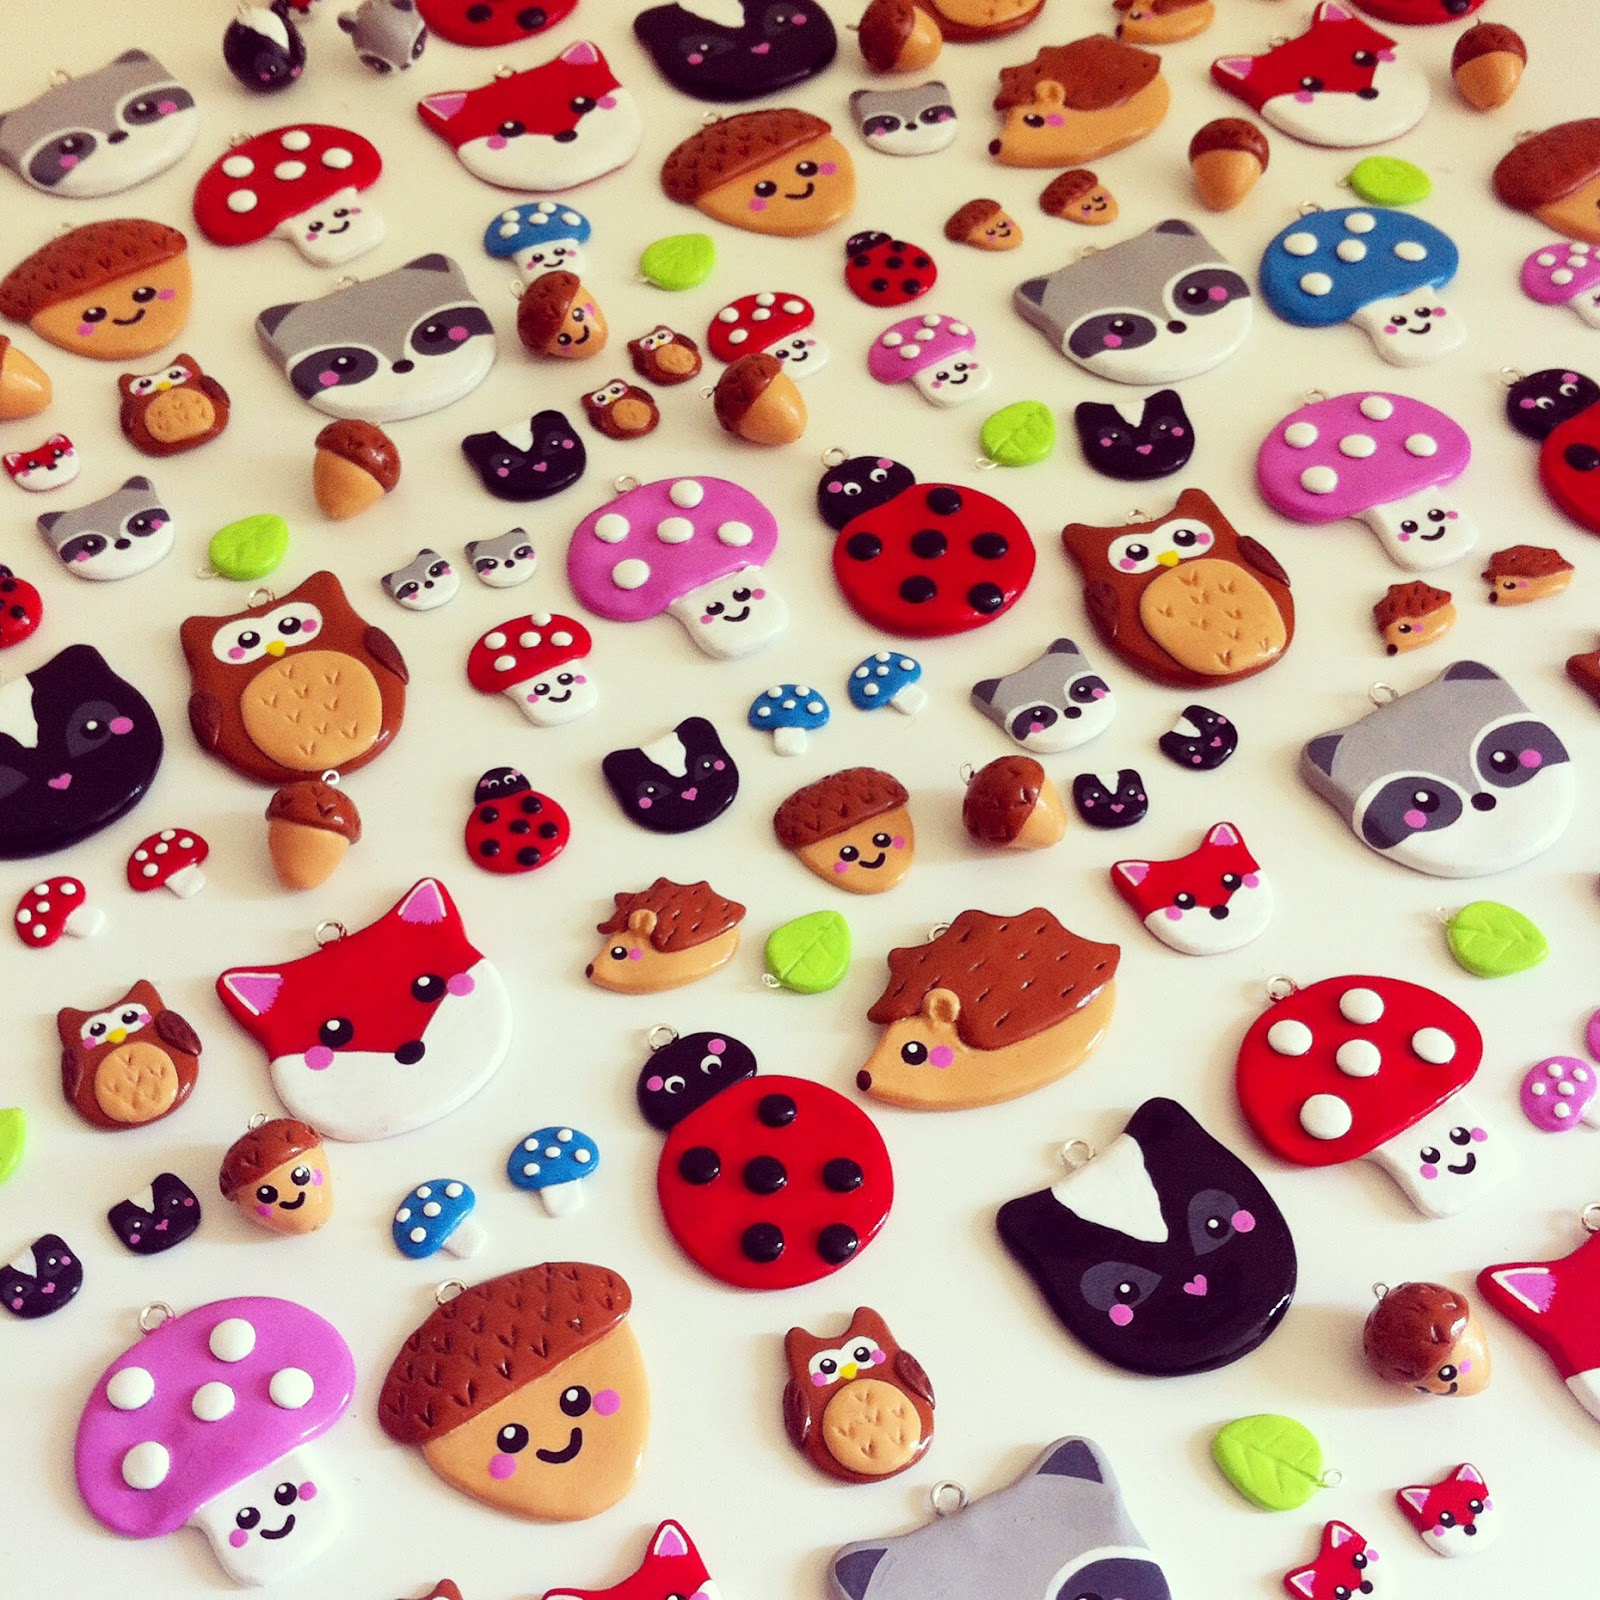 http://www.littlemissdelicious.com/ourshop/cat_887761-Woodland-Creatures-Collection.html